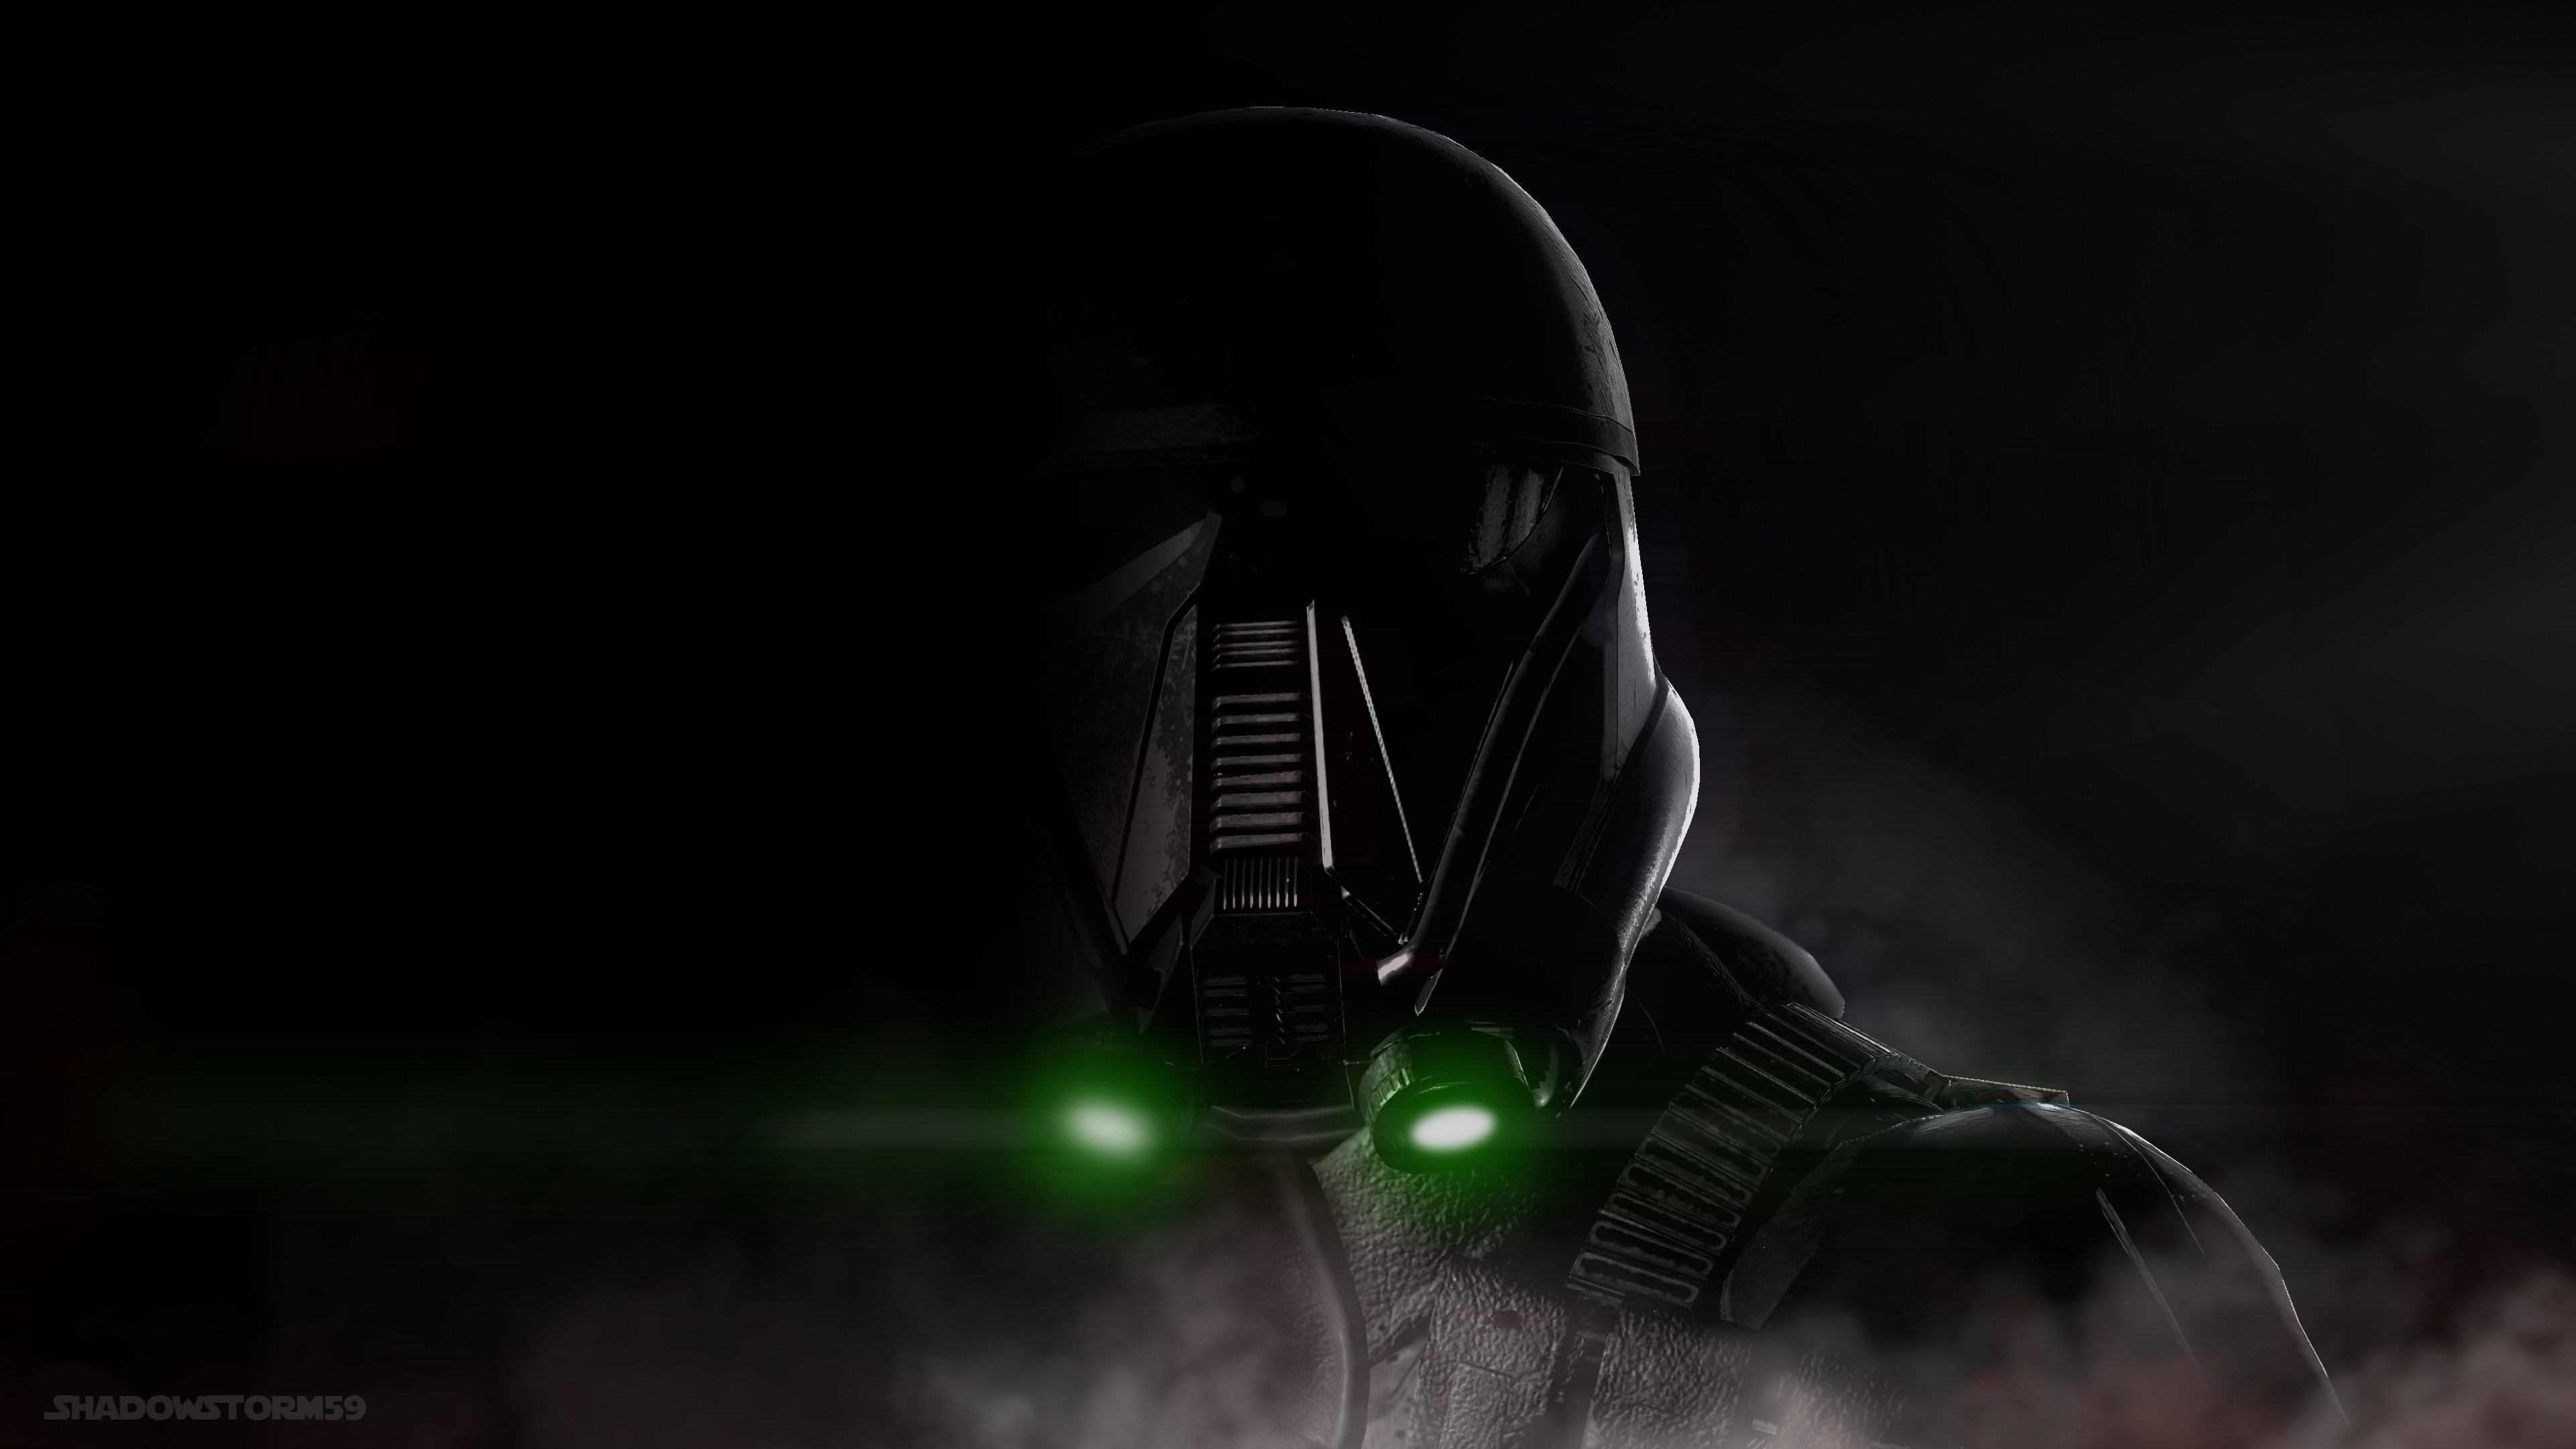 DEATH TROOPER 4k wallpaper StarWarsBattlefront